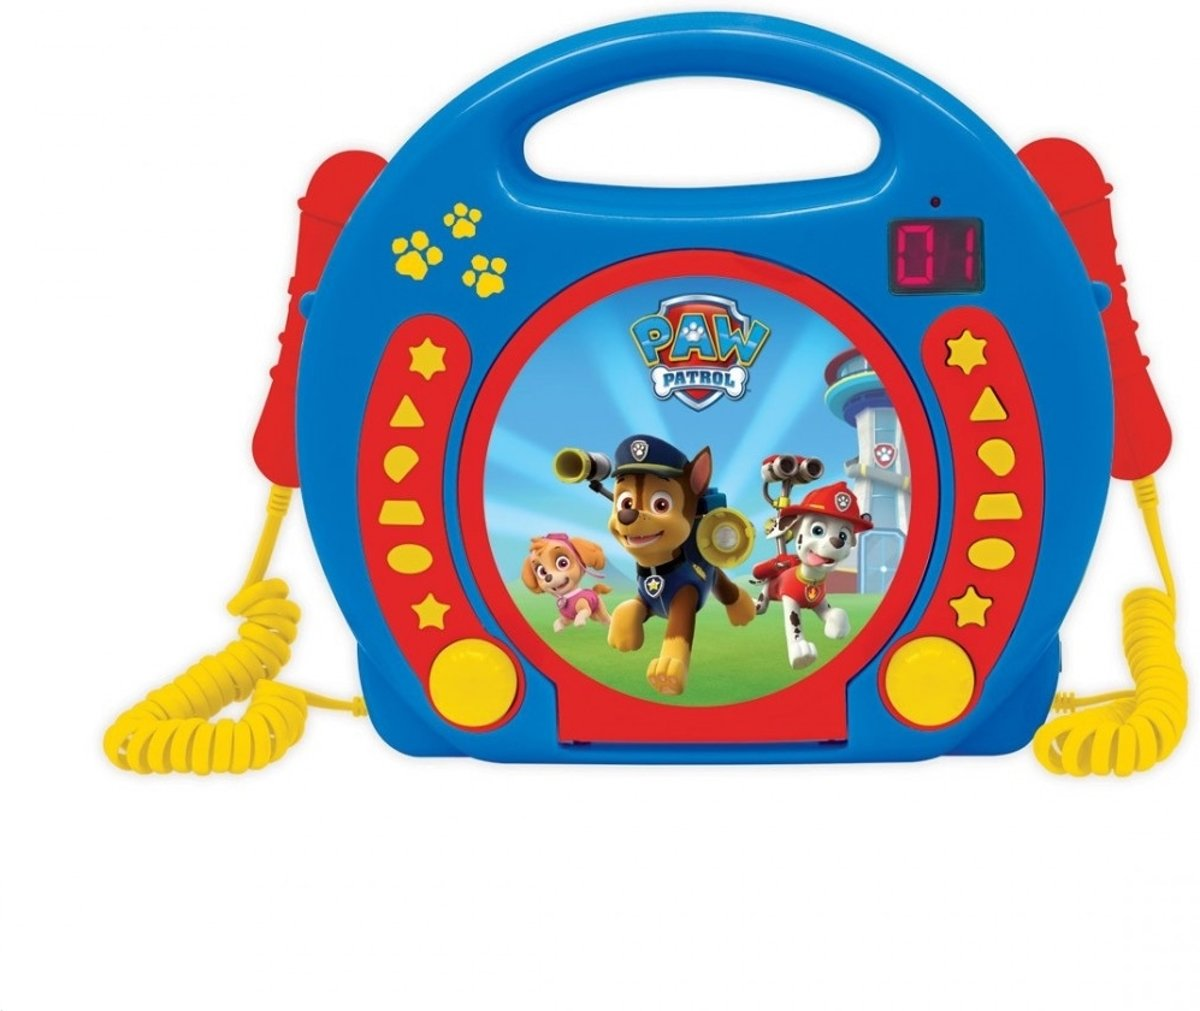 Lexibook - Paw Patrol - CD player with microphones